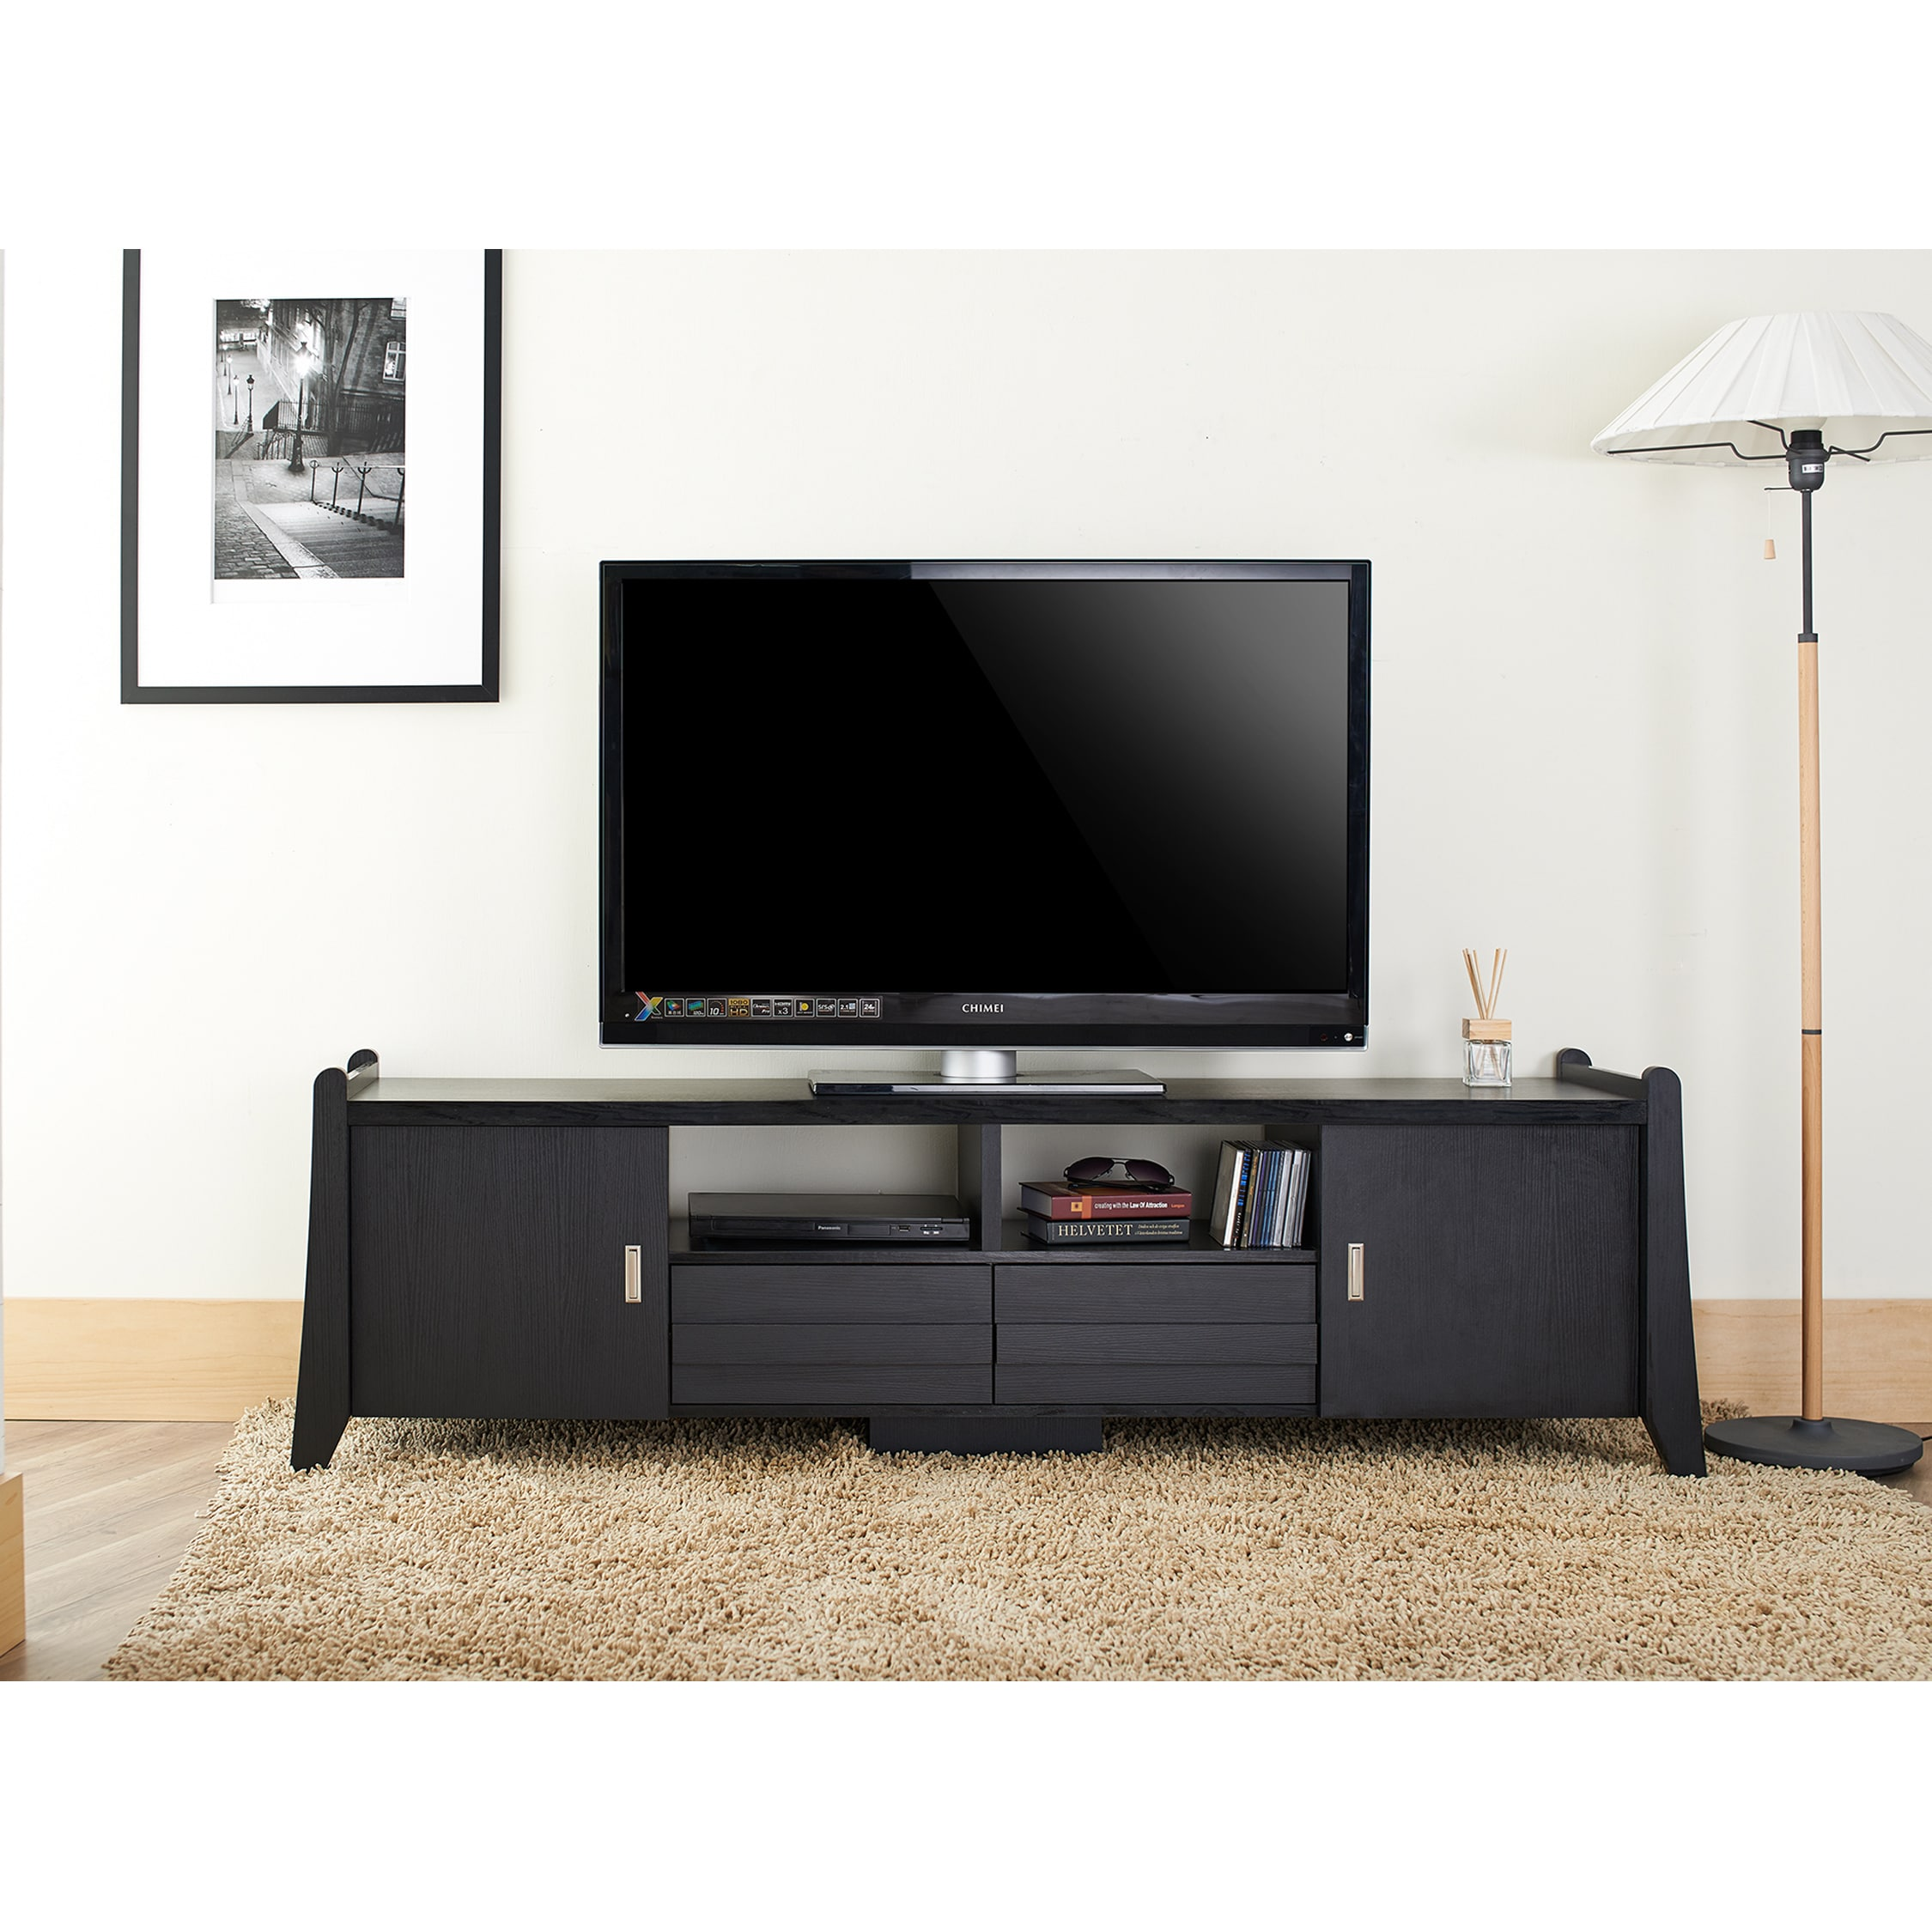 clay alder home gerald modern inch entertainment tv console  freeshipping today  overstockcom  . clay alder home gerald modern inch entertainment tv console